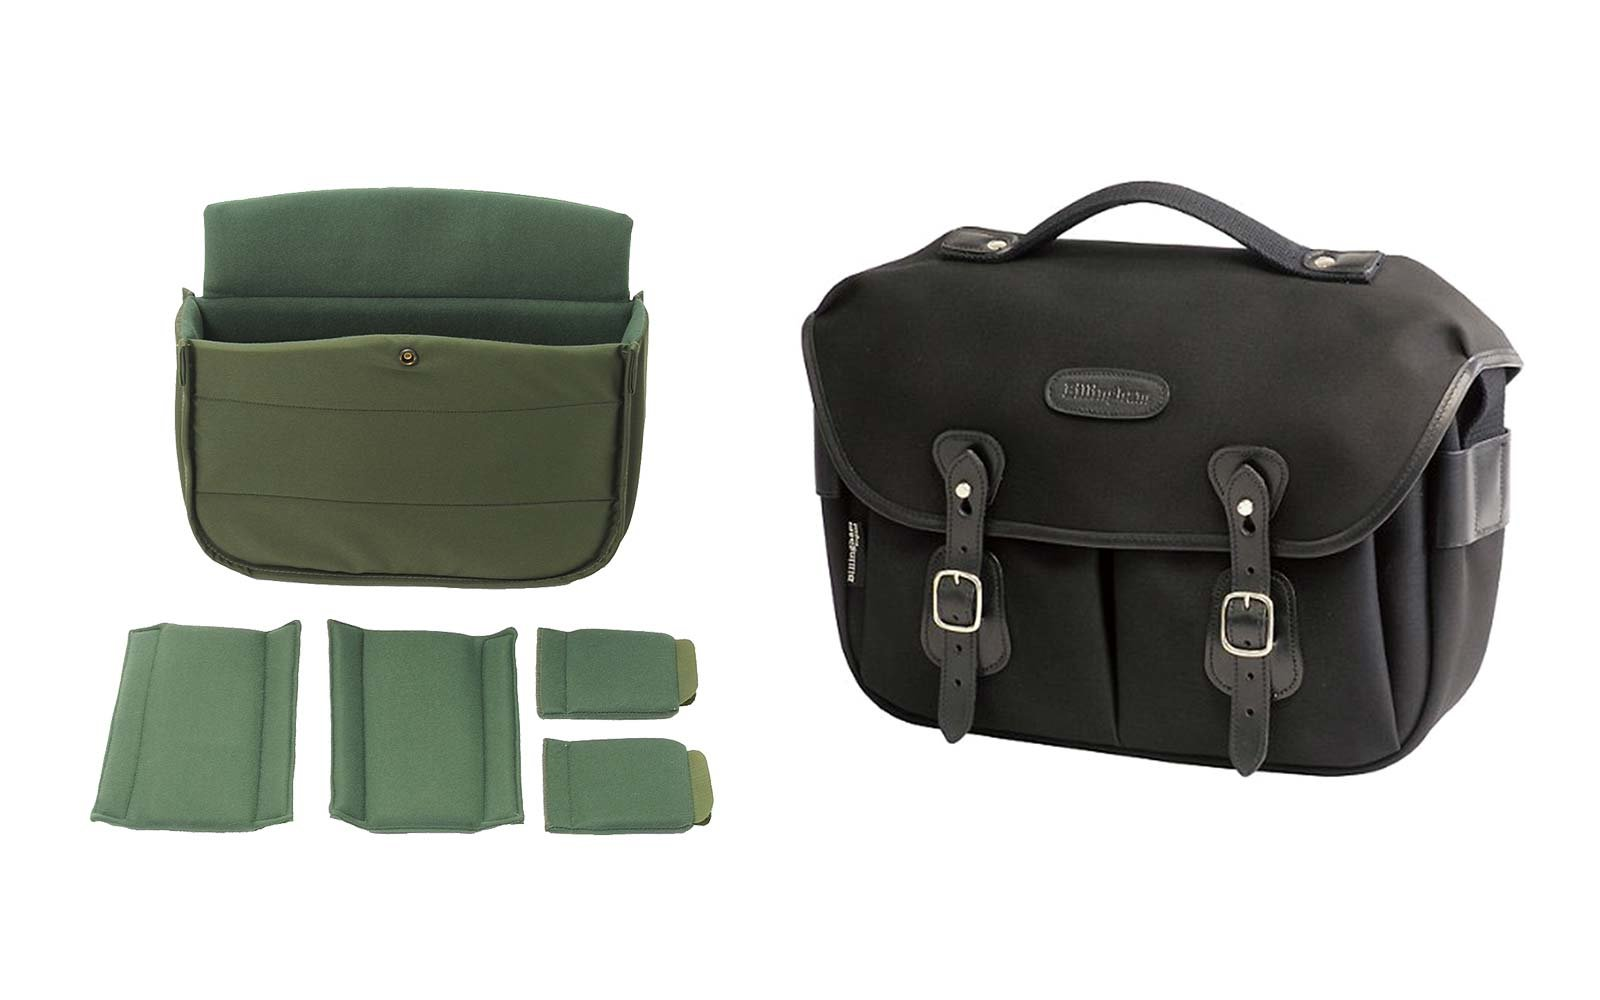 billingham camera travel bag